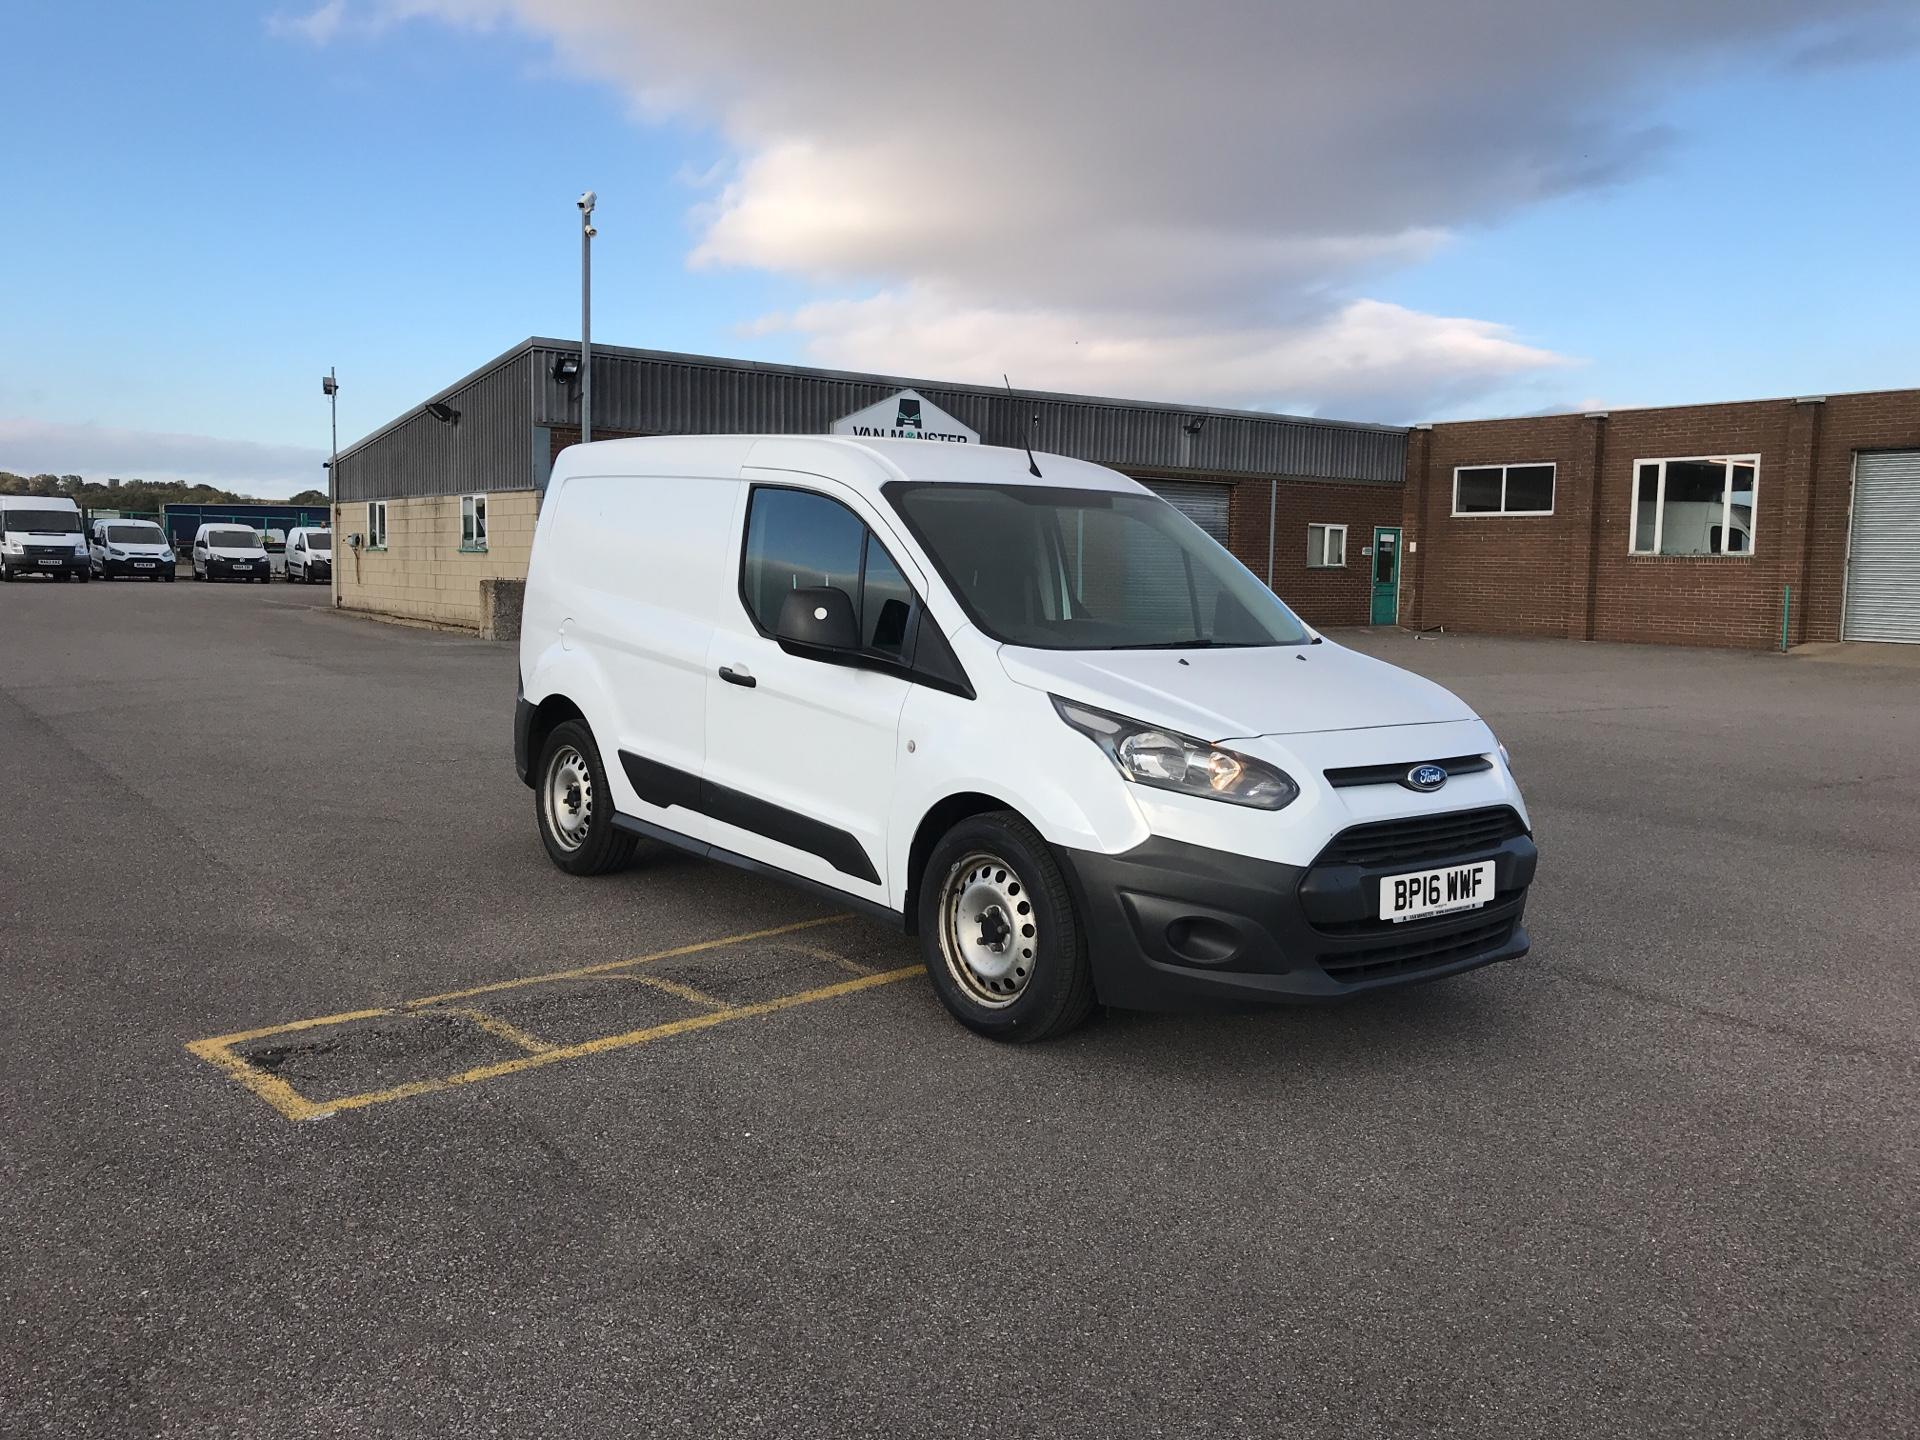 2016 Ford Transit Connect 200 L1 DIESEL 1.6 TDCI 75PS VAN EURO 5 (BP16WWF)